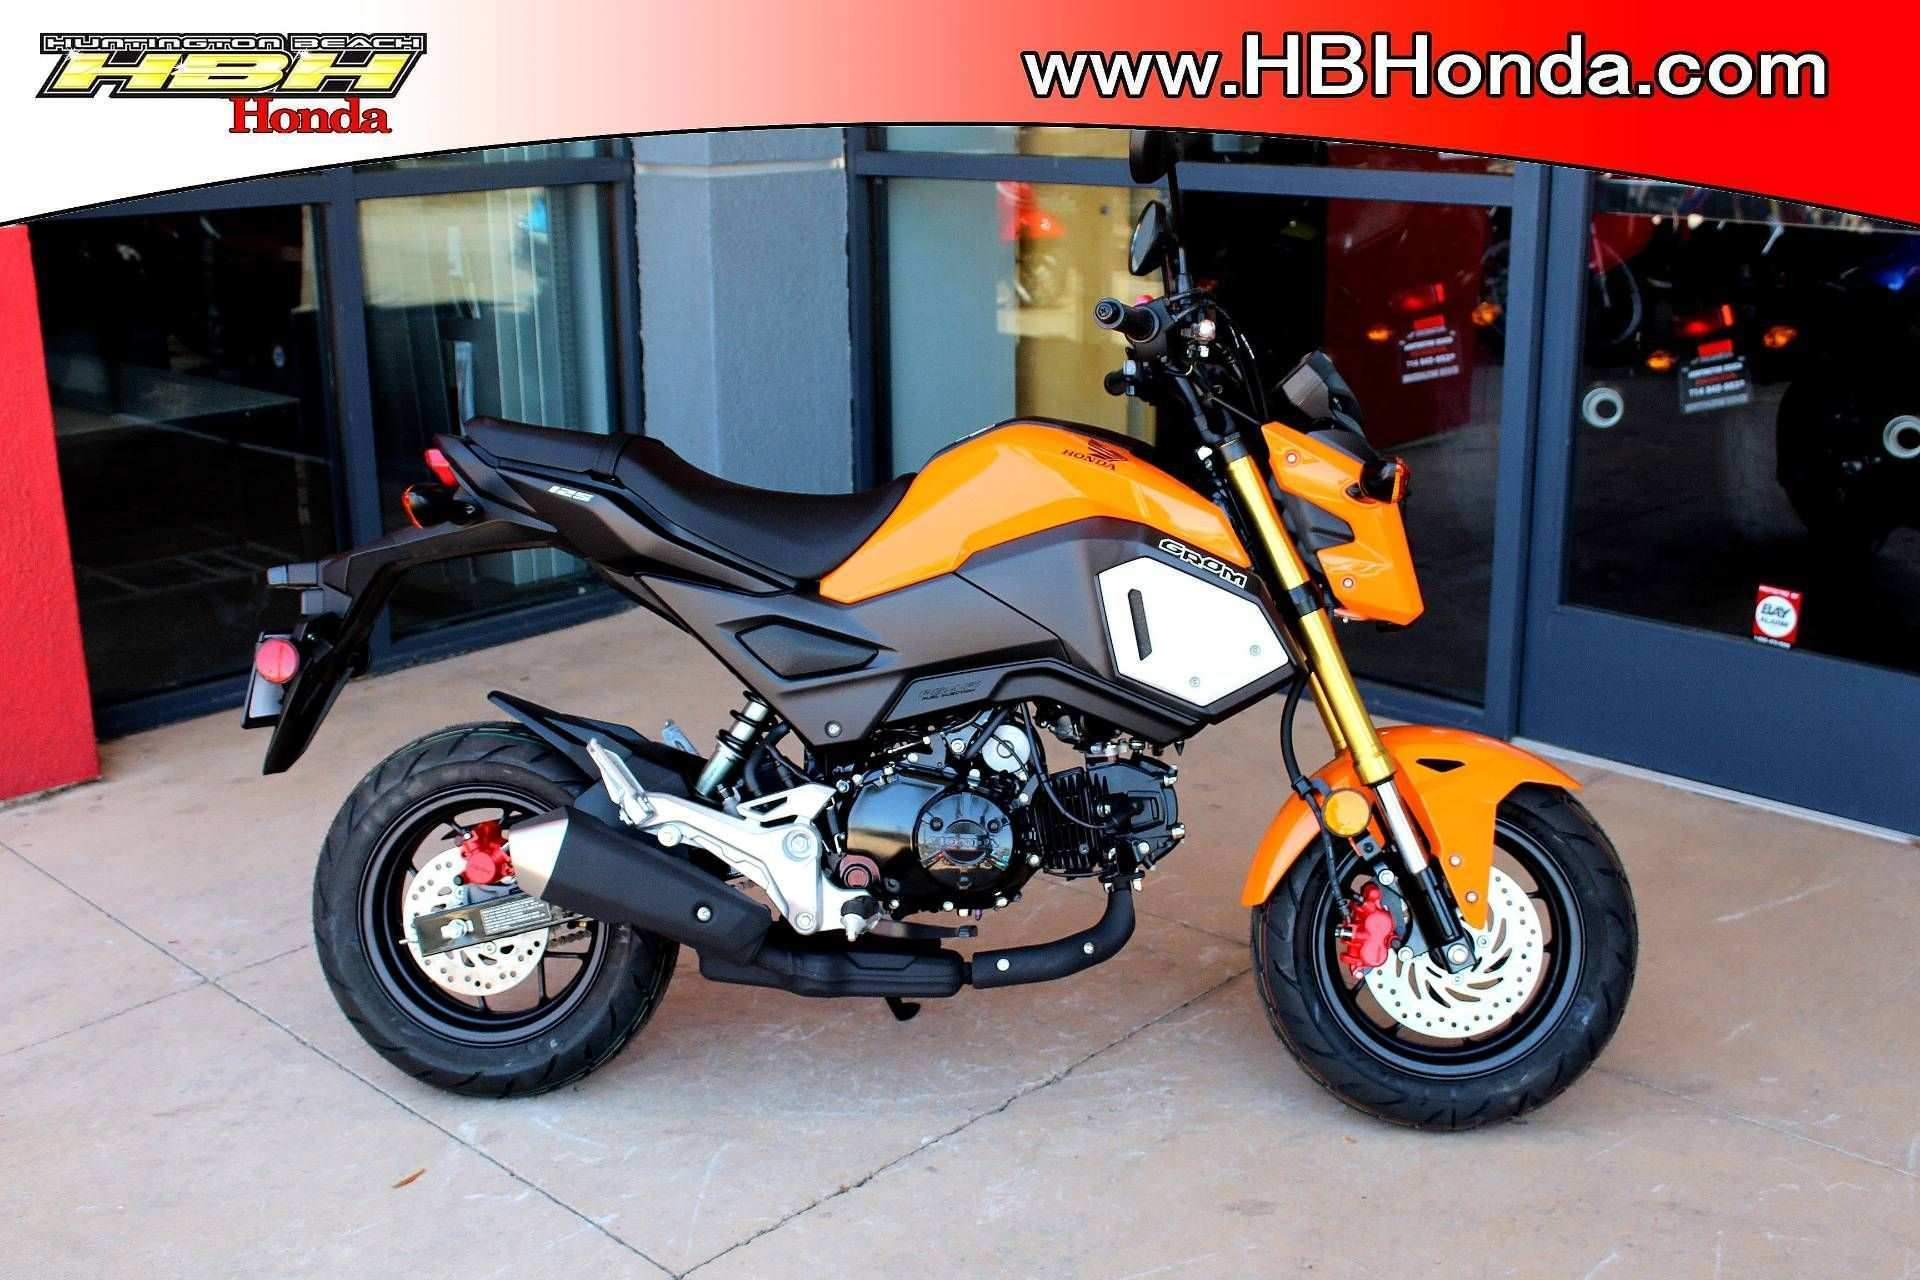 69 Concept of Best Honda Grom 2019 Release Date Spy Shoot Price and Review for Best Honda Grom 2019 Release Date Spy Shoot